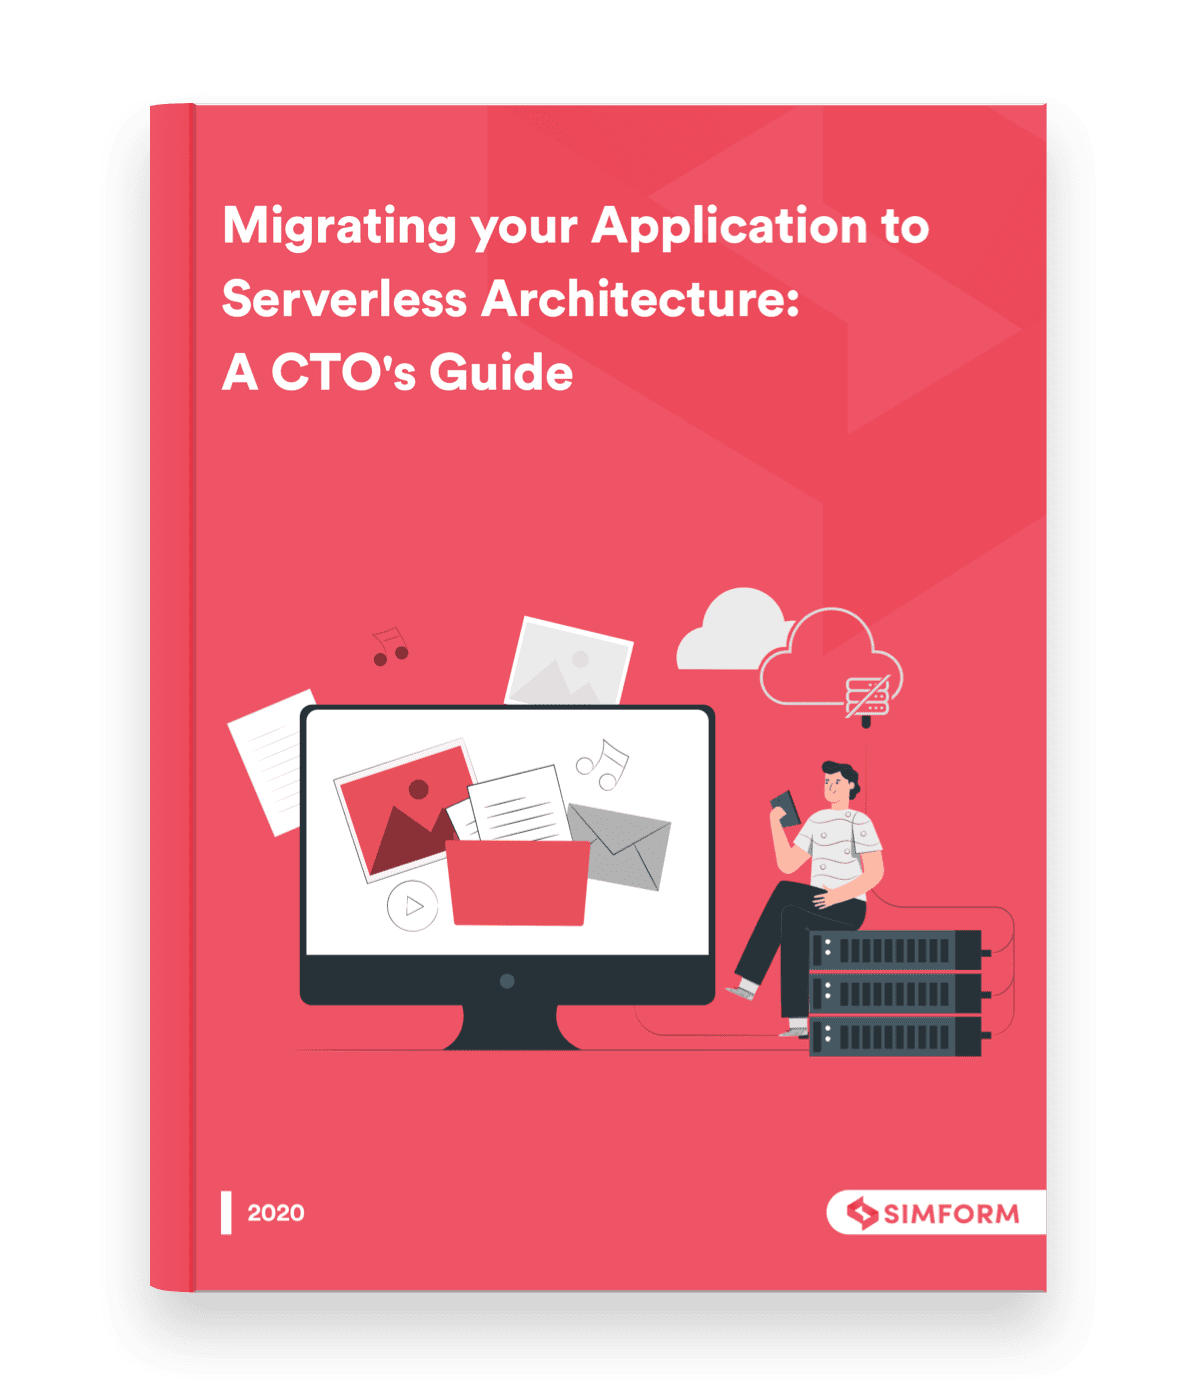 Migrating your App to Serverless Architecture